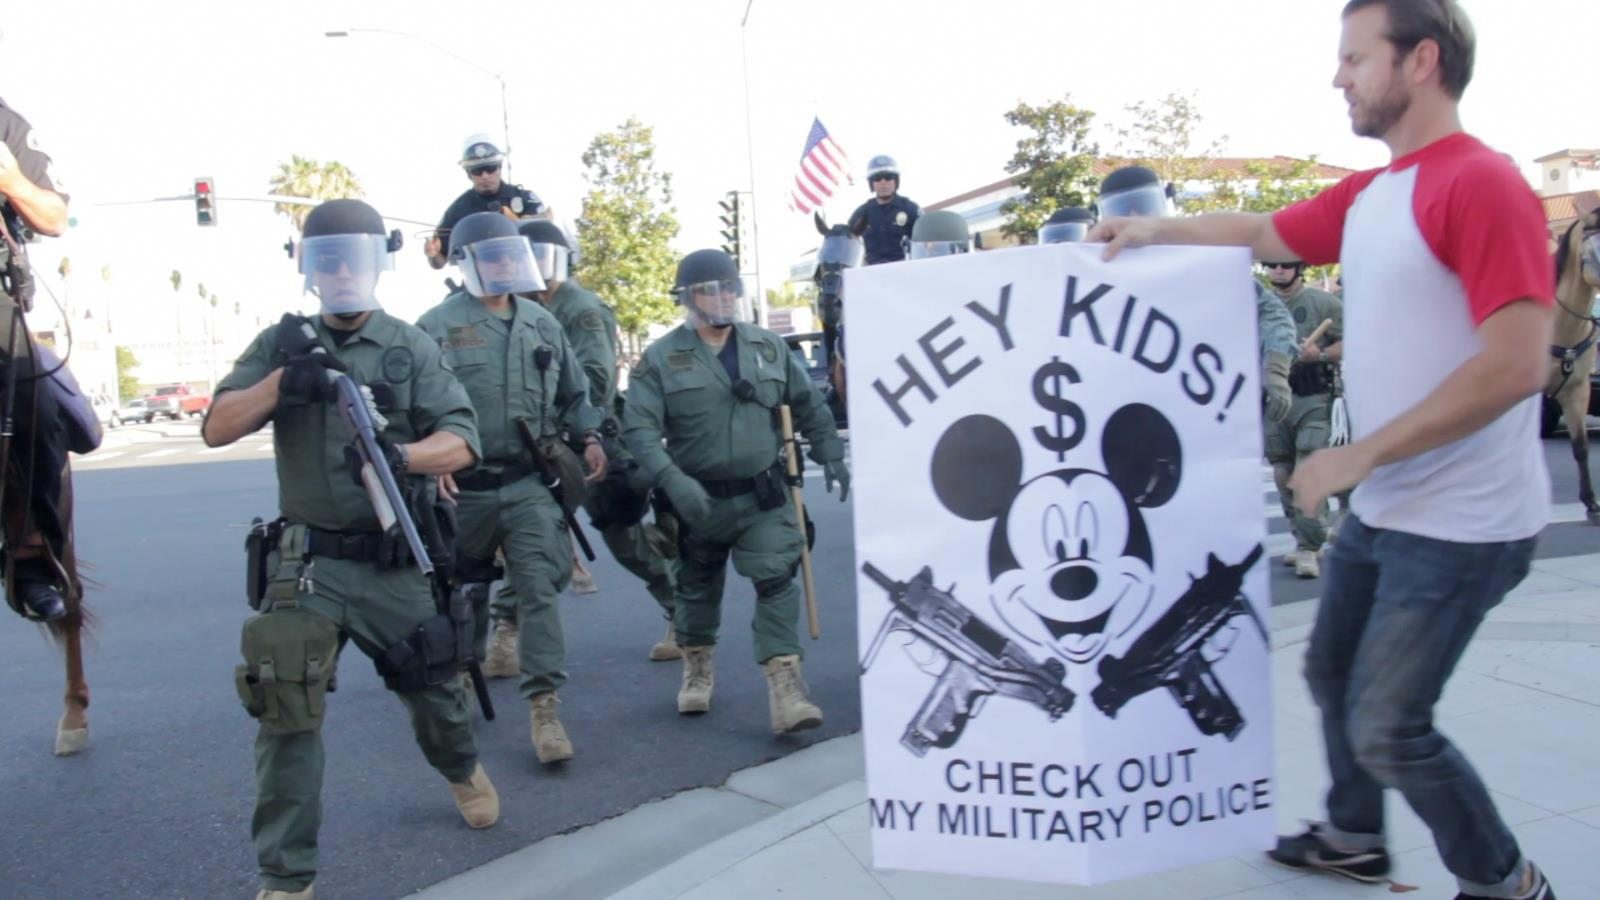 militarization of police Radley balko blogs about criminal justice, the drug war and civil liberties for the washington post he is the author of the book rise of the warrior cop: the militarization of america's.